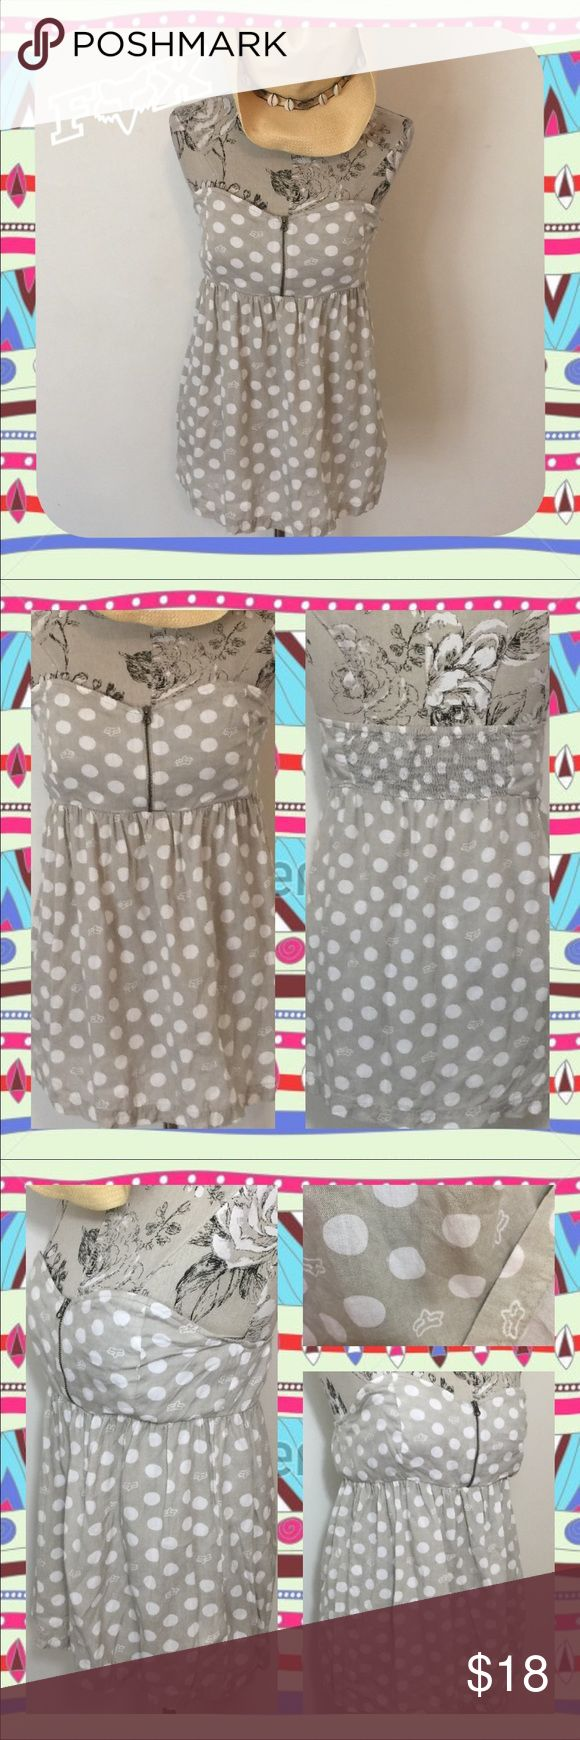 ~Fox Racing🏁Sweetheart Babydoll Zipper Tube Top~ This Fox Racing / Riders Co., size Medium adorably, cute & sassy, babydoll top looks great alone or w/a cardigan & perfect girly shirt to wear to watch some motocross. 😜 • Size Medium (Will fit a Larger Chest best) • Light Grey w/White Polka Dots & Fox Head Logo Patterns • Sleeveless/Strapless/Tube Top • Sweetheart Neckline w/working Zipper • Empire Waist w/elastic back ~ Flattering but Flowing/Looser Bodice Fox Tops